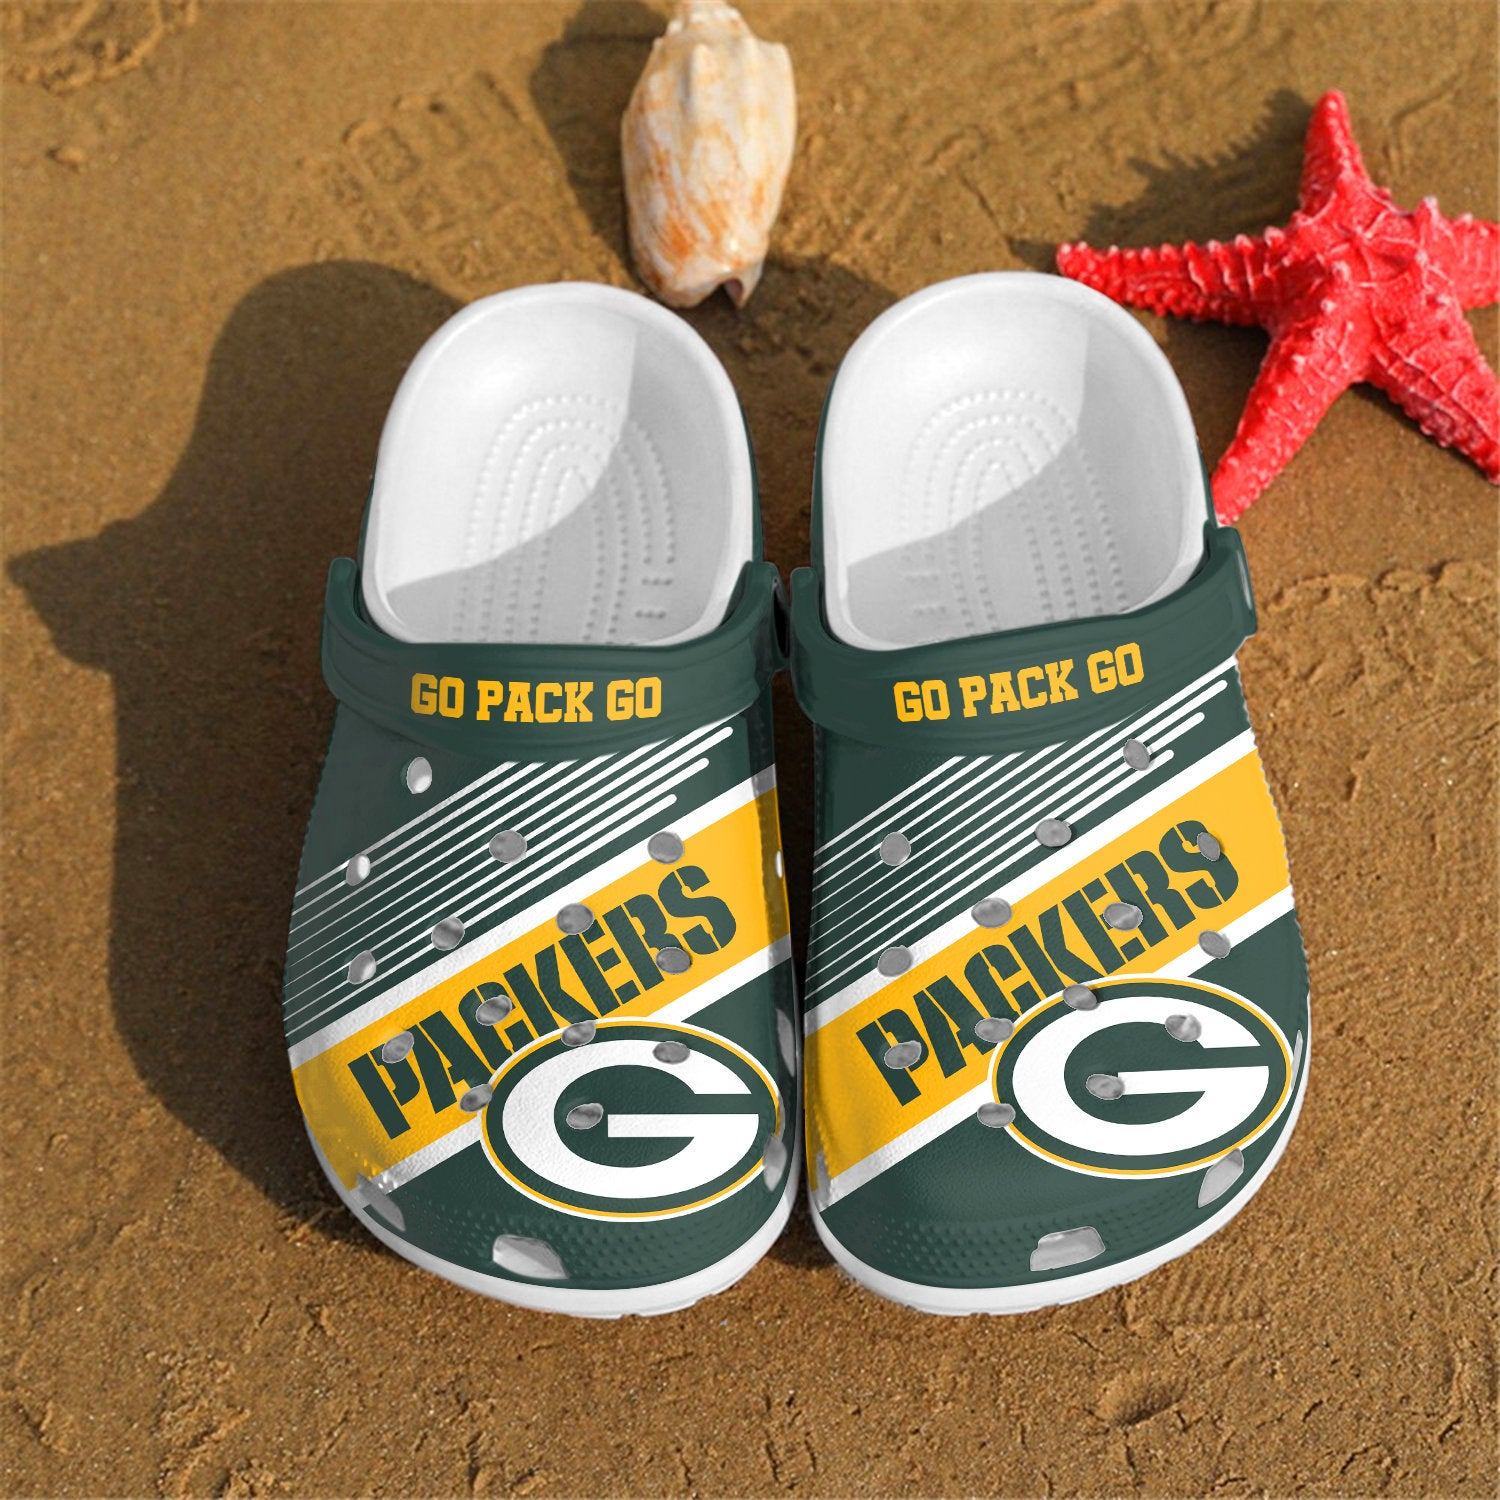 Green Bay Packers Go Pack Go Custom For Nfl Fans Crocs Clog Shoes